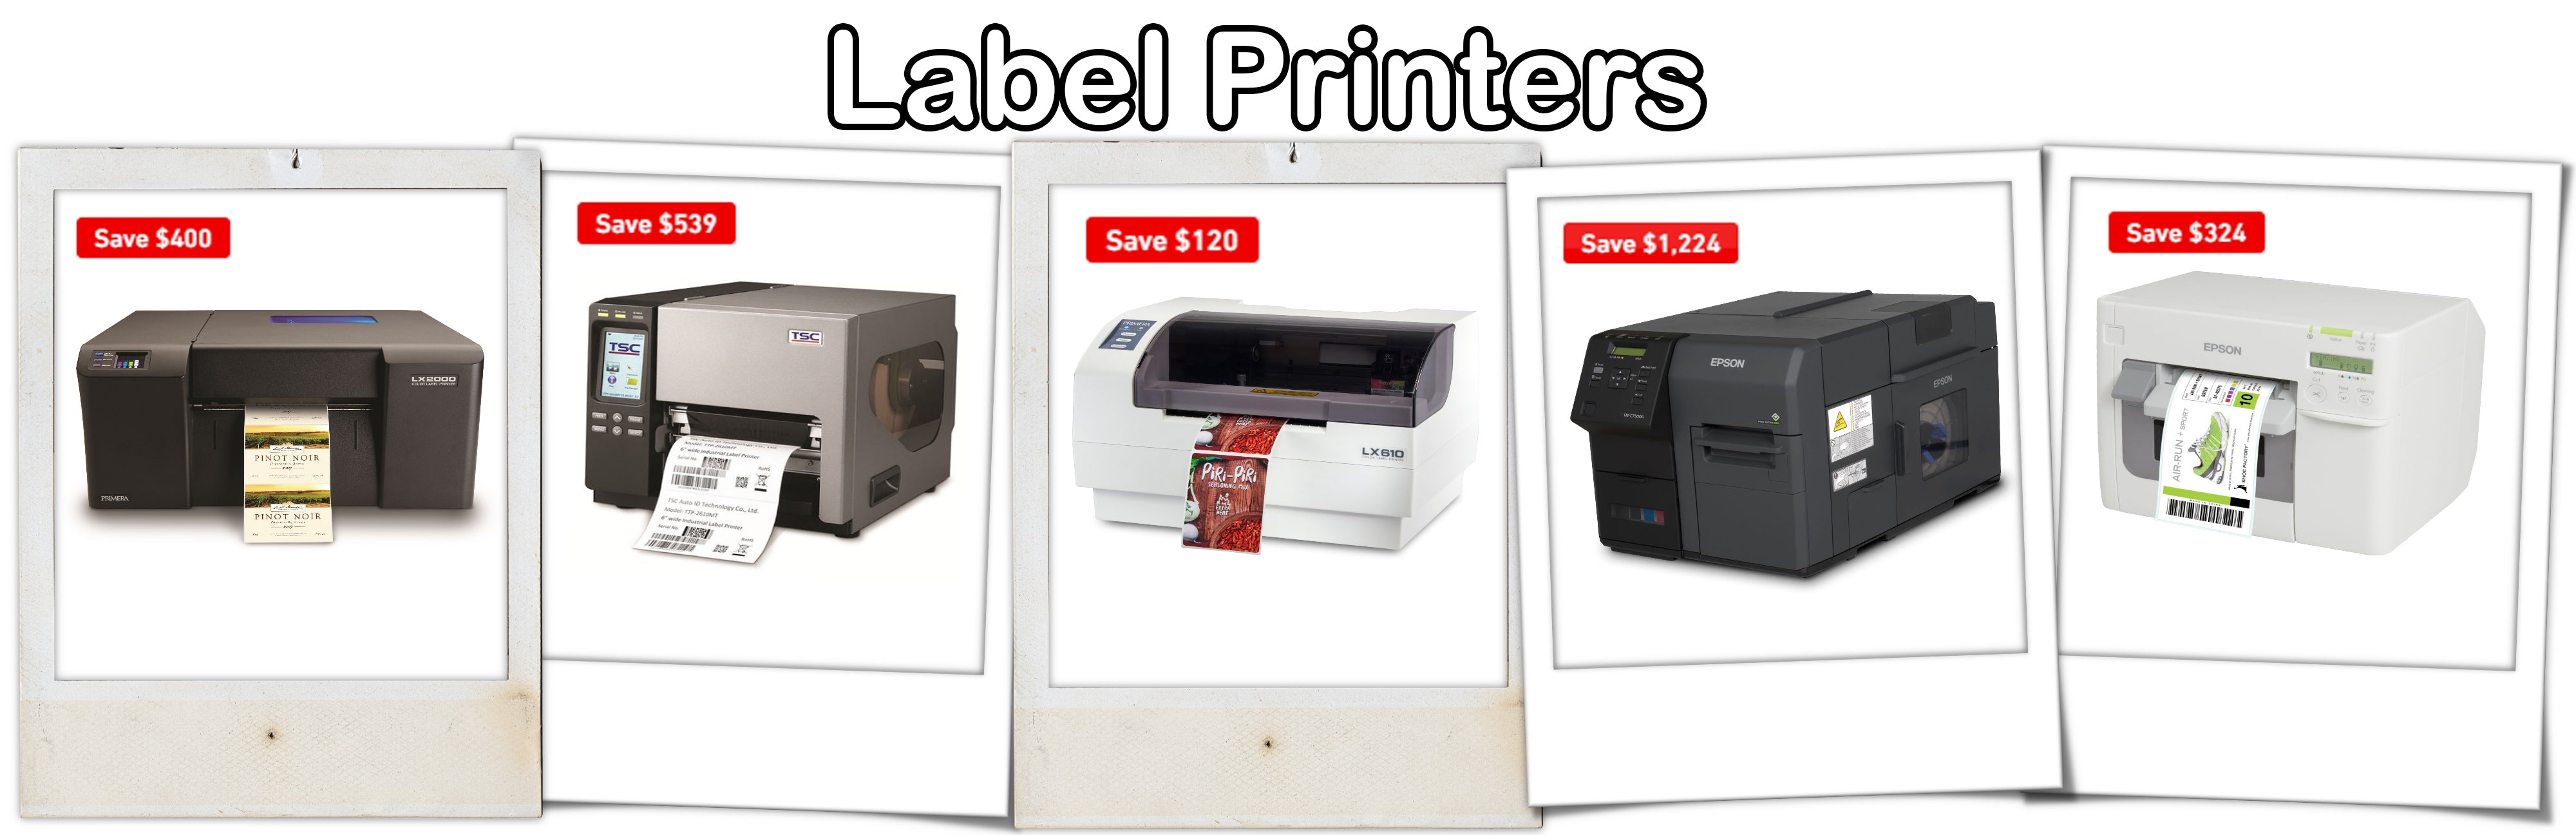 ForeFront Label Solutions - Label Printers Sale